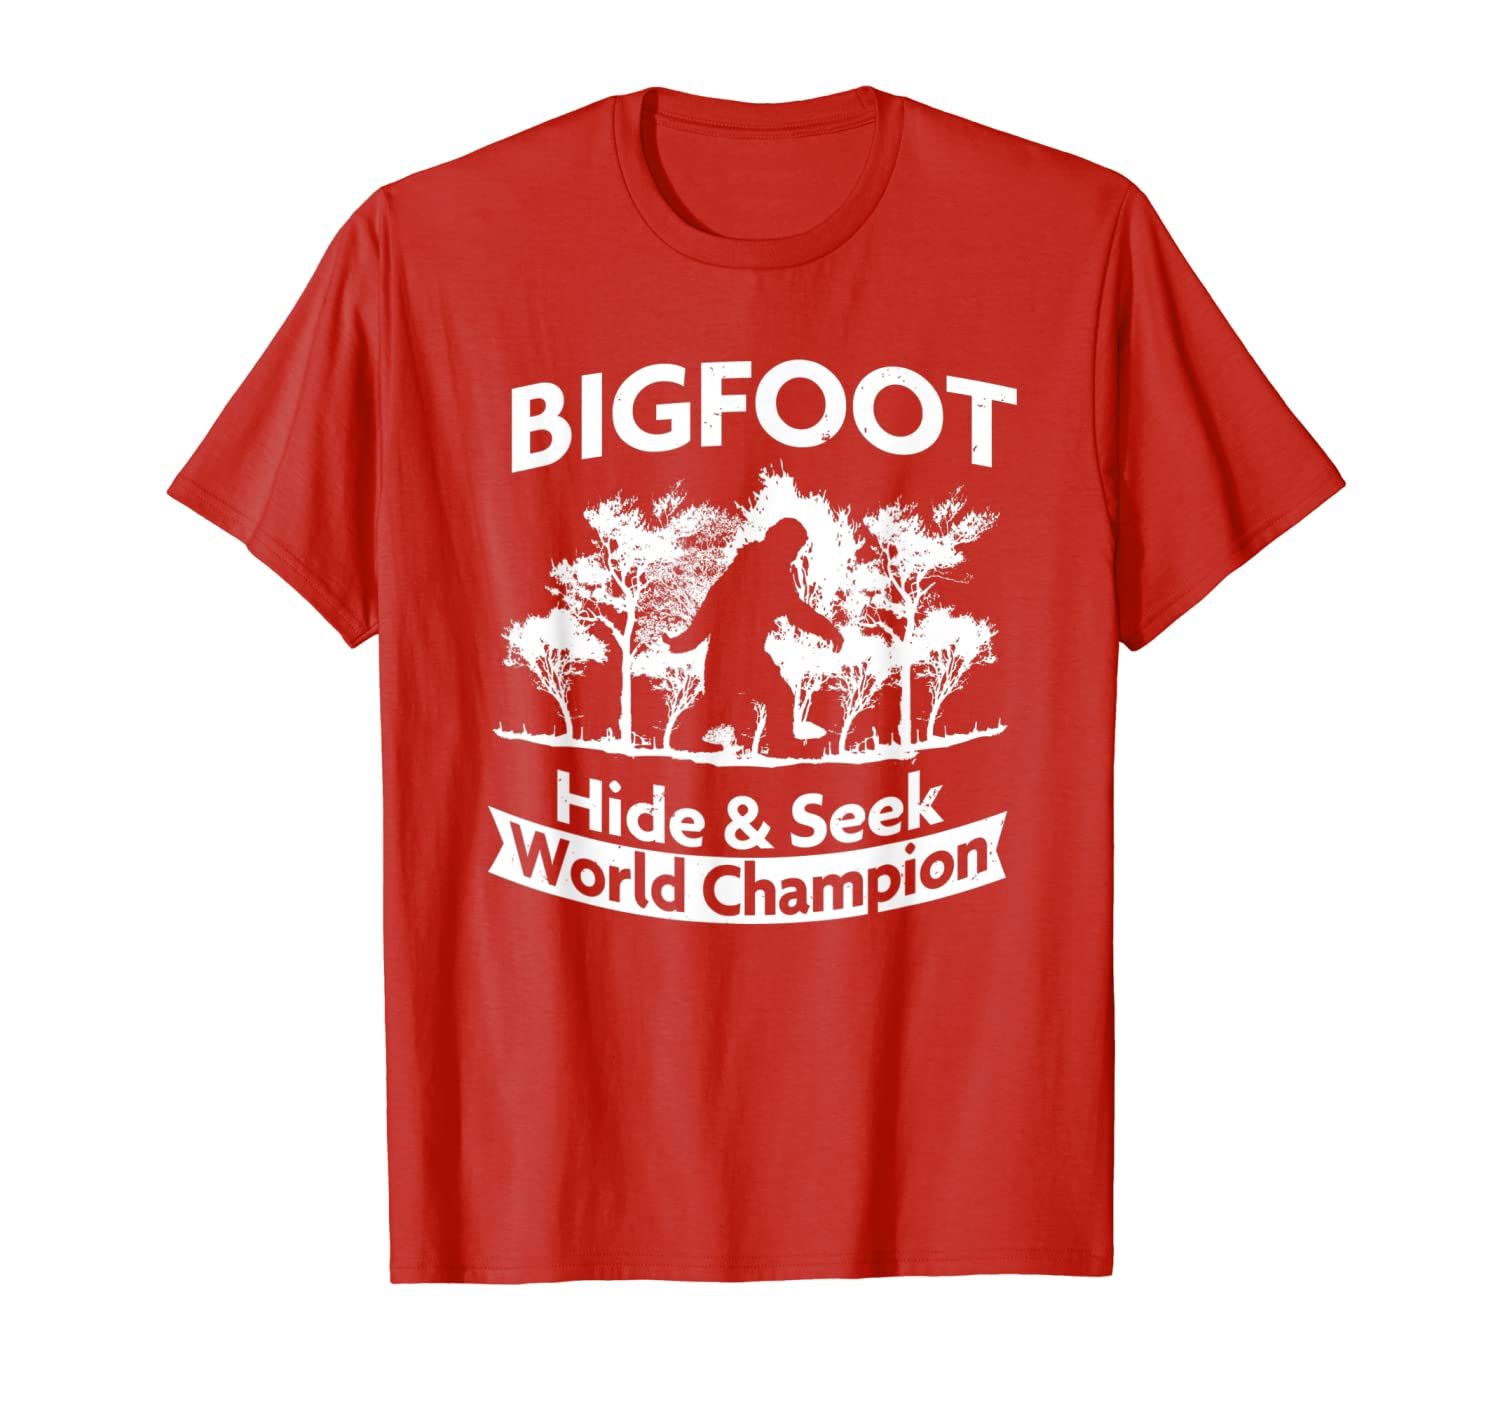 6e35d4633 Amazon.com: BIGFOOT: Hide & Seek World Champion T-Shirt - Funny Shirt:  Clothing